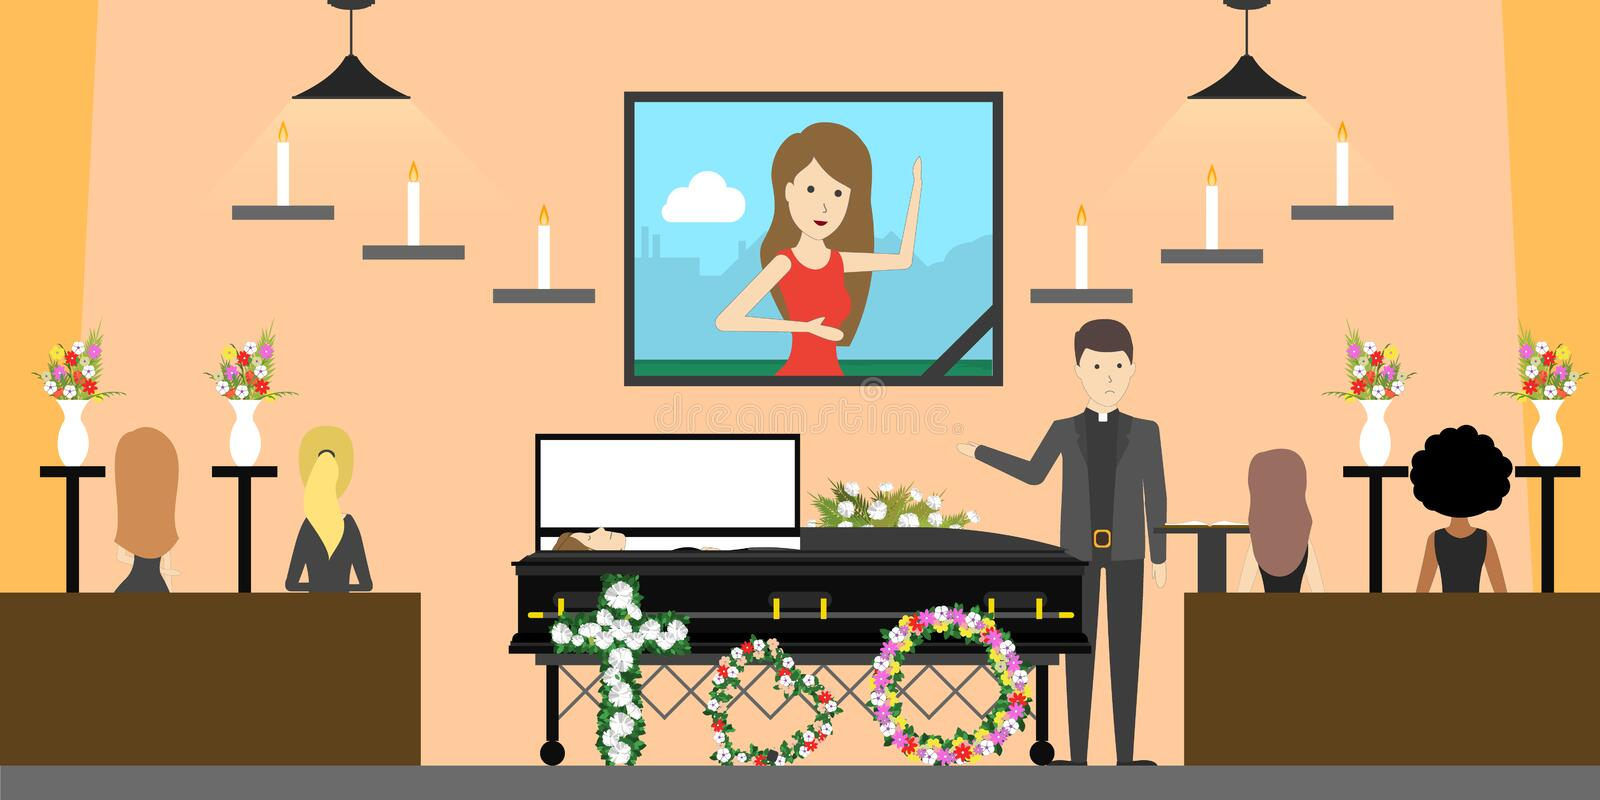 Funeral at church. People say good bye to dead person royalty free illustration